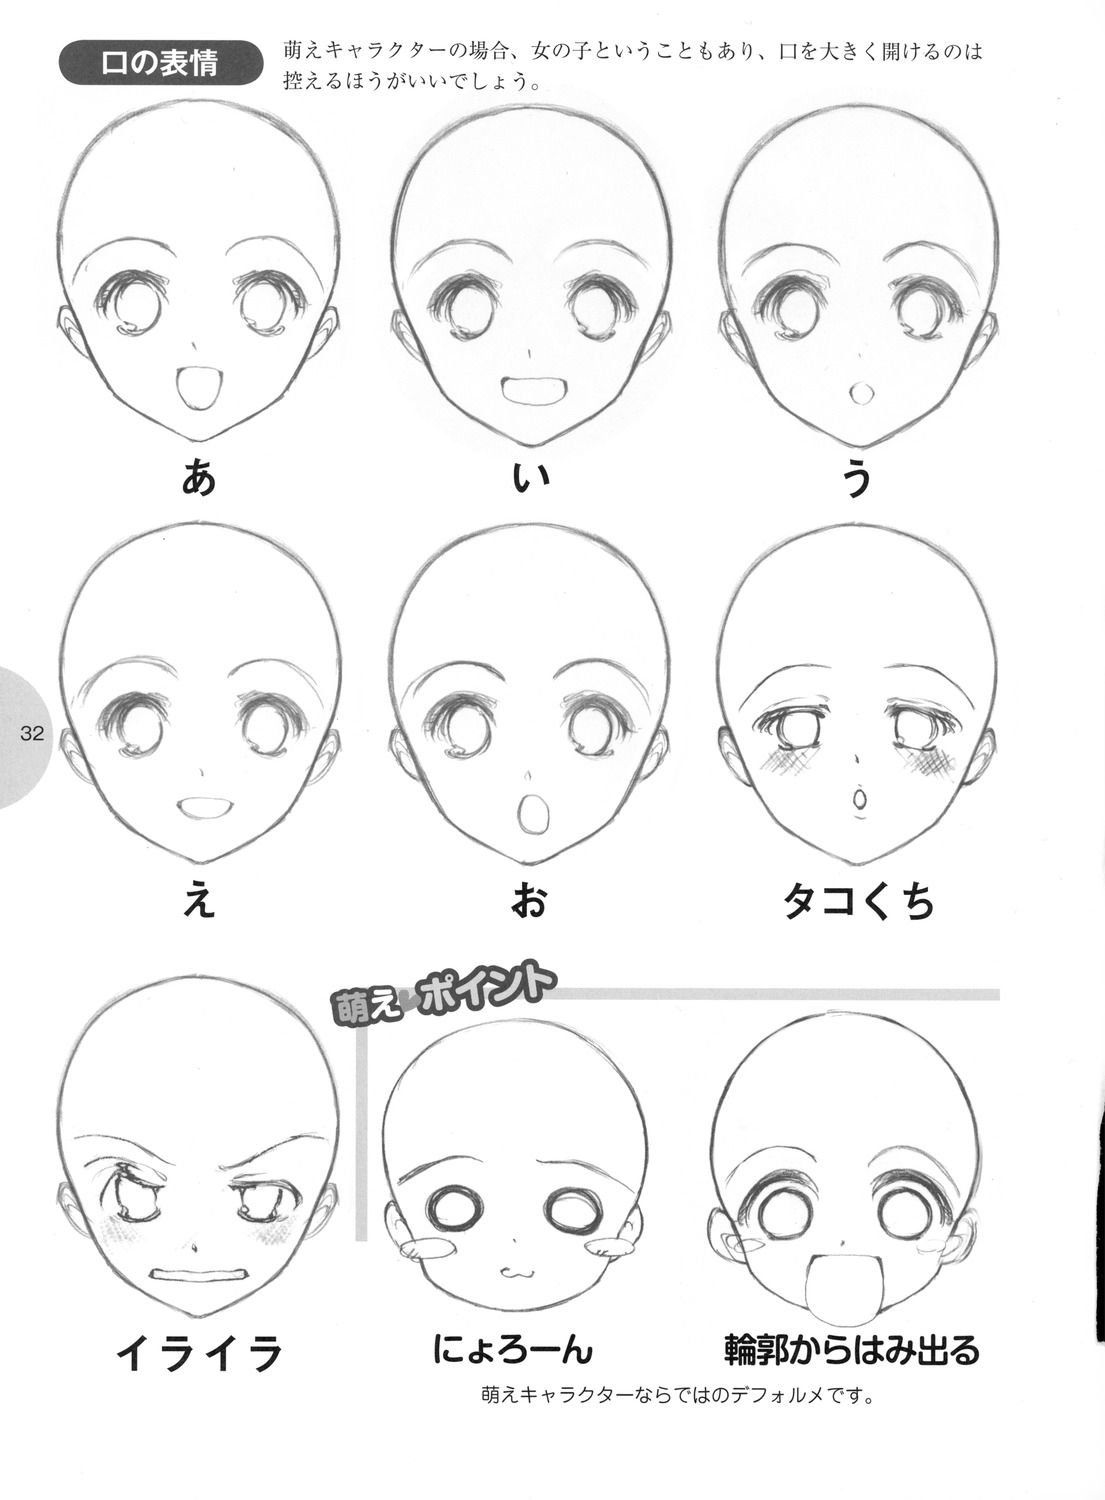 Emotions chibi manga manga anime manga drawing drawing poses drawing tips